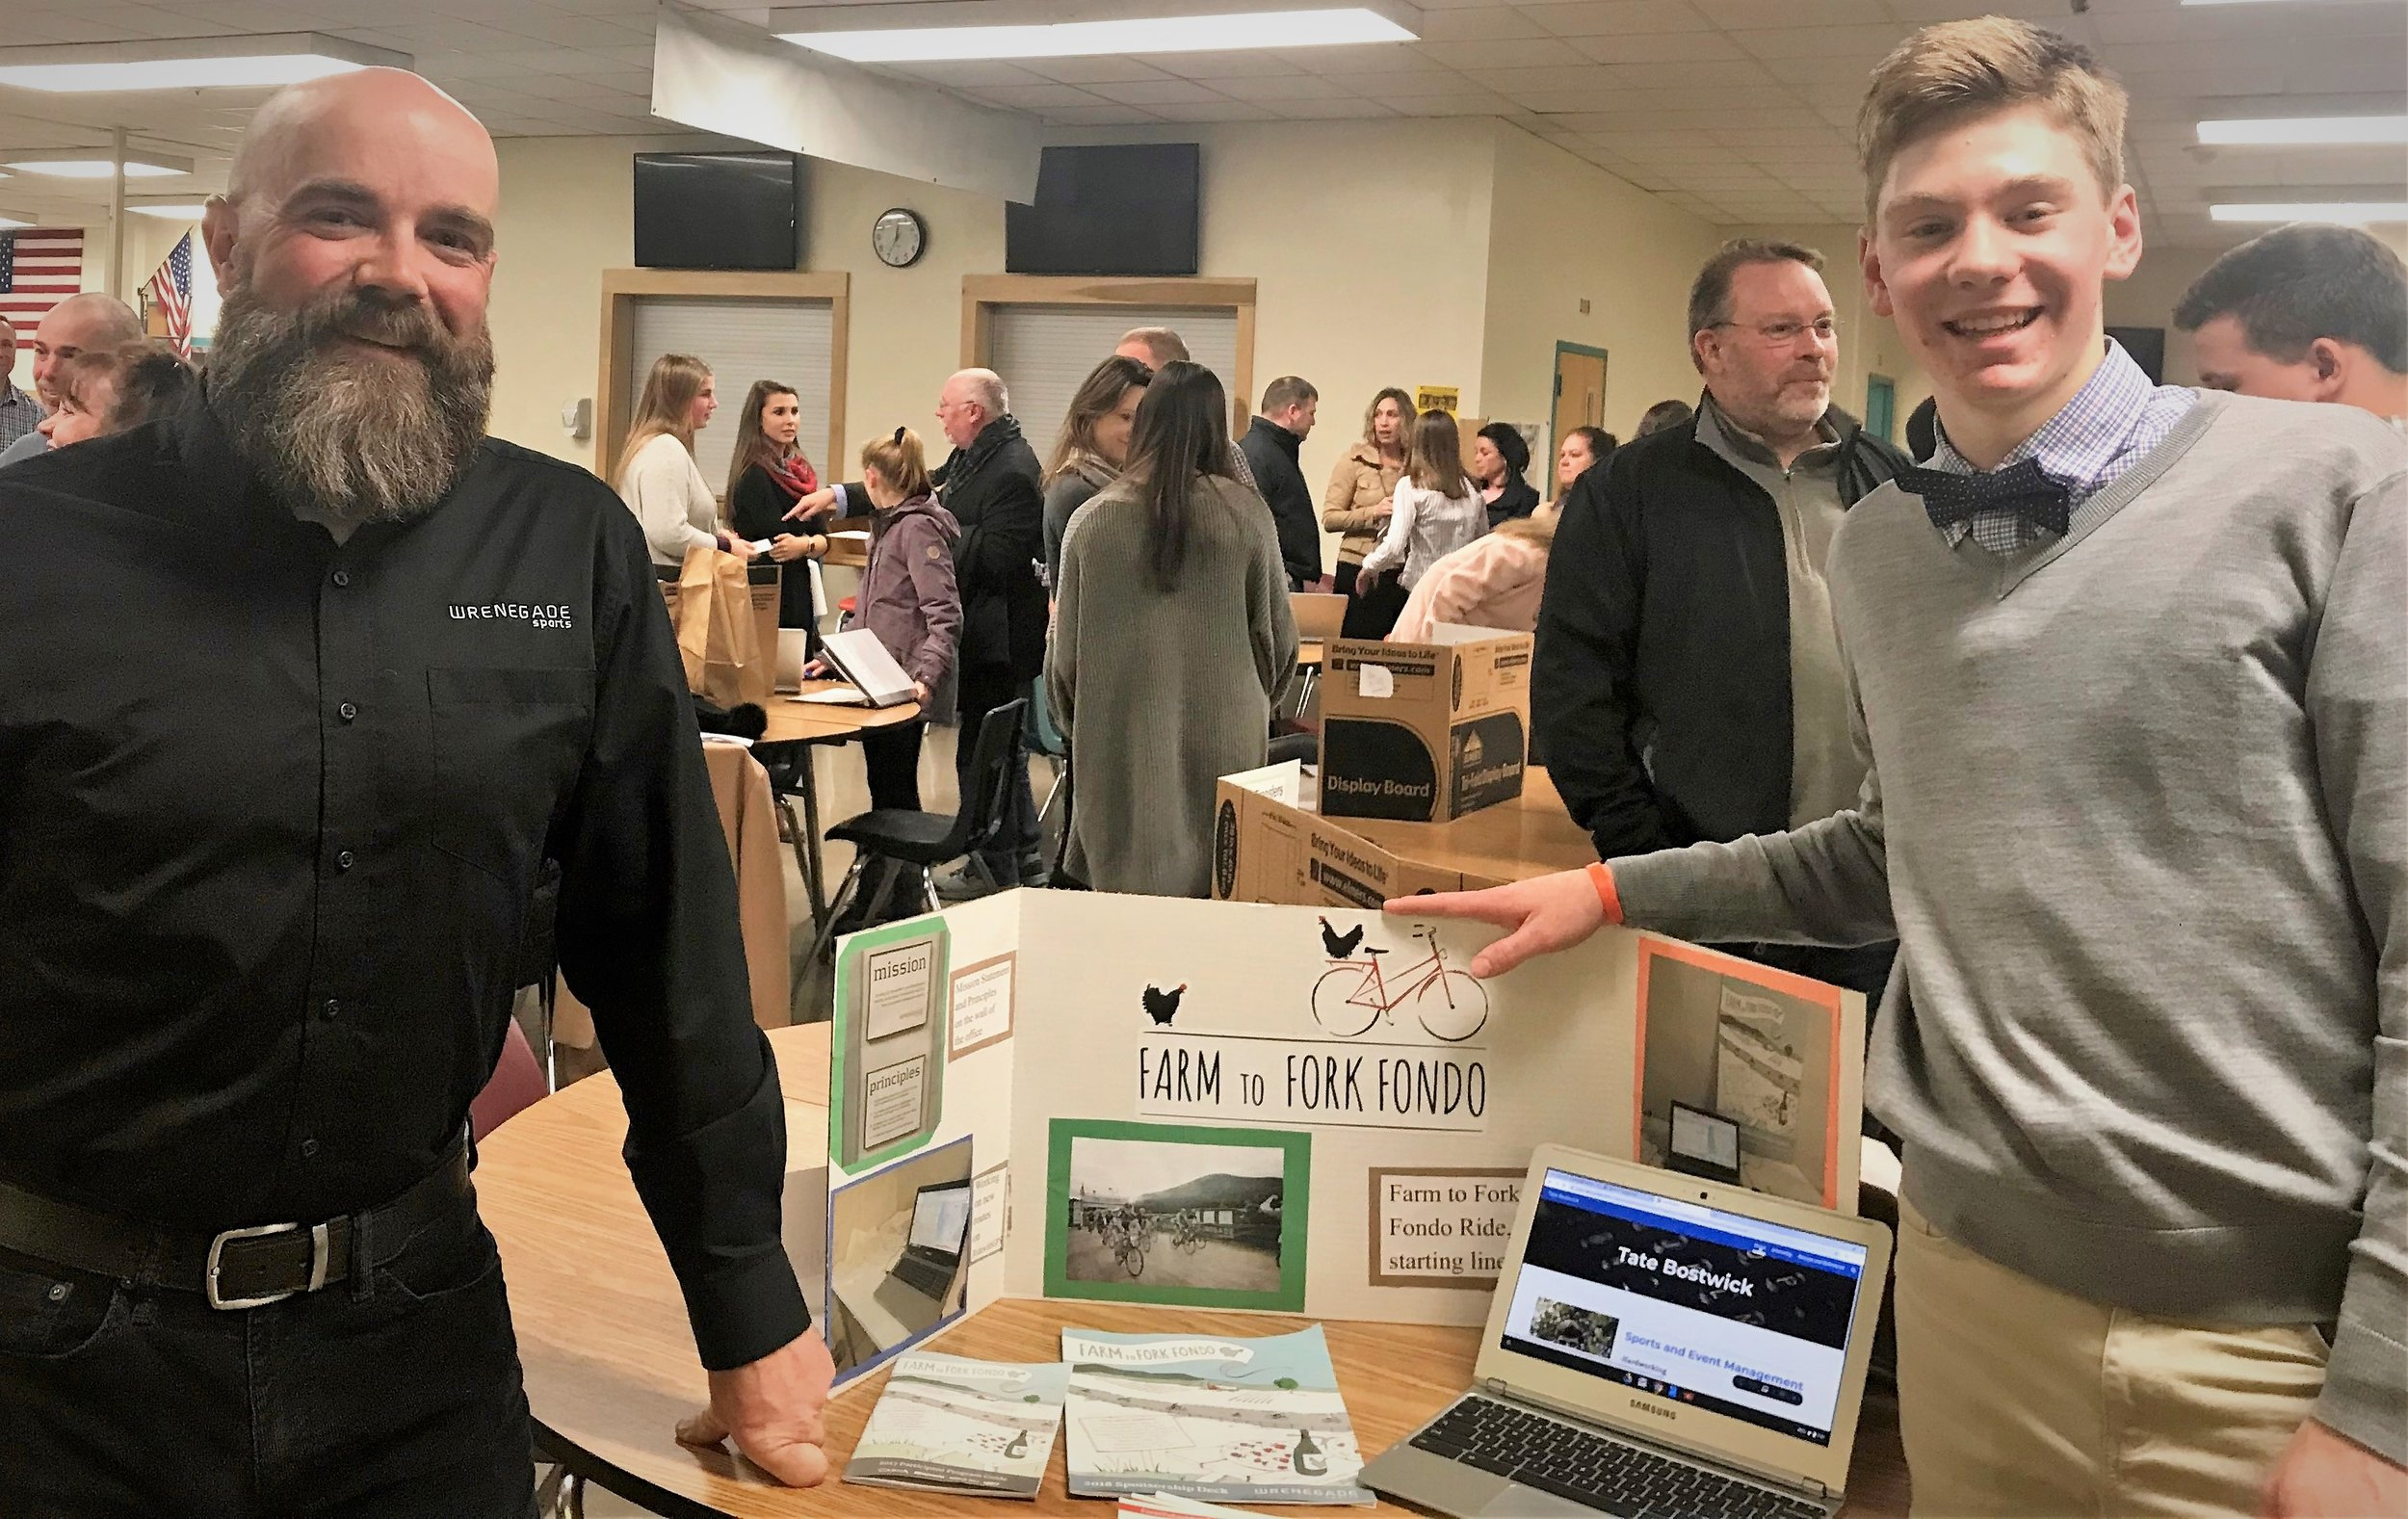 At Essex High School's Internship Exhibition Night: Jim Beebe-Woodard, Director of Operations at Wrenegade Sports and Tate Bostwick, Wrenegade Sports Intern